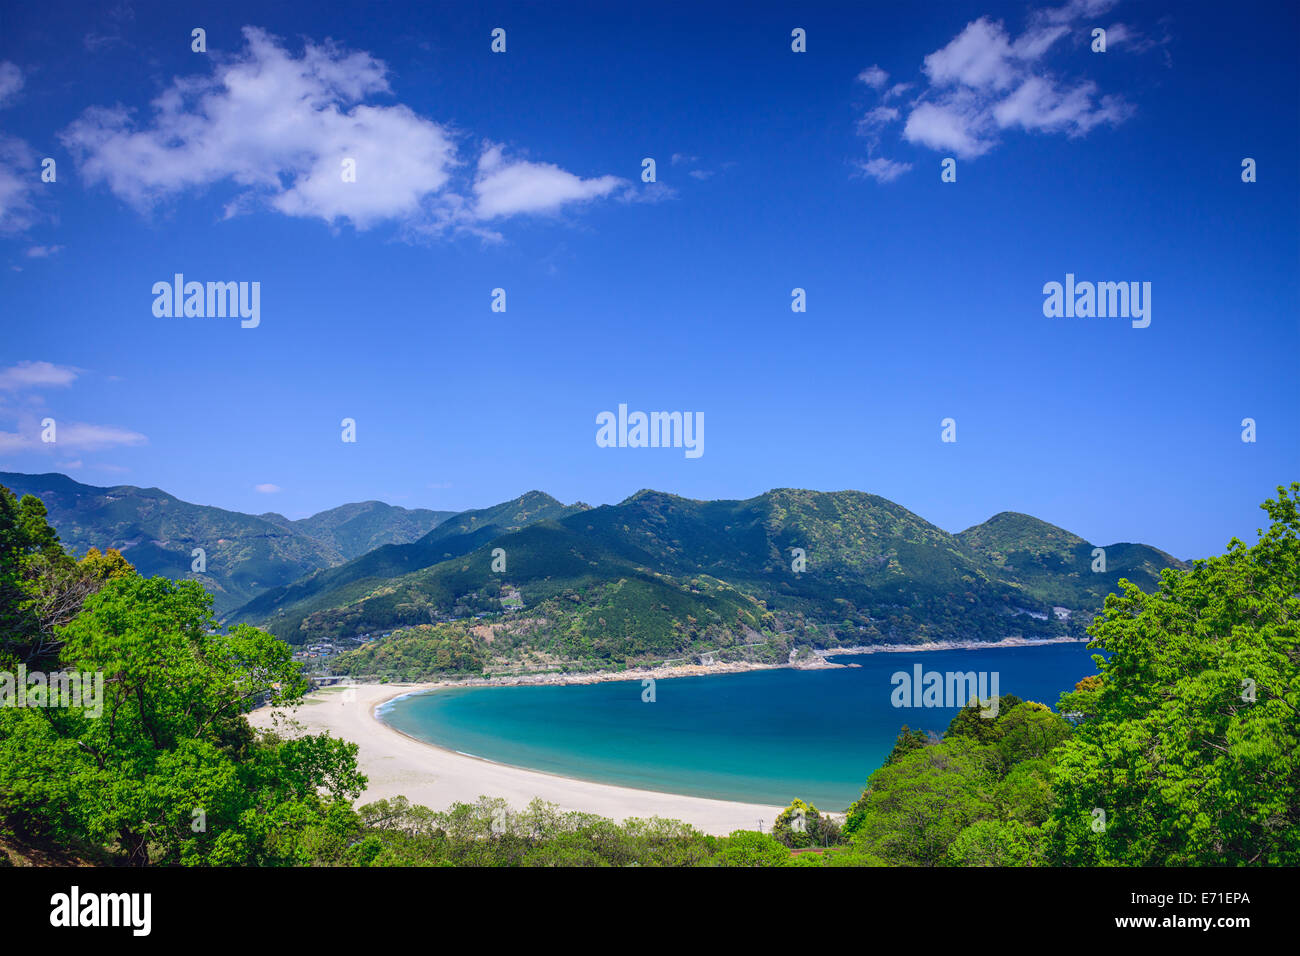 Atashika Beach in Kumano, Japan. - Stock Image